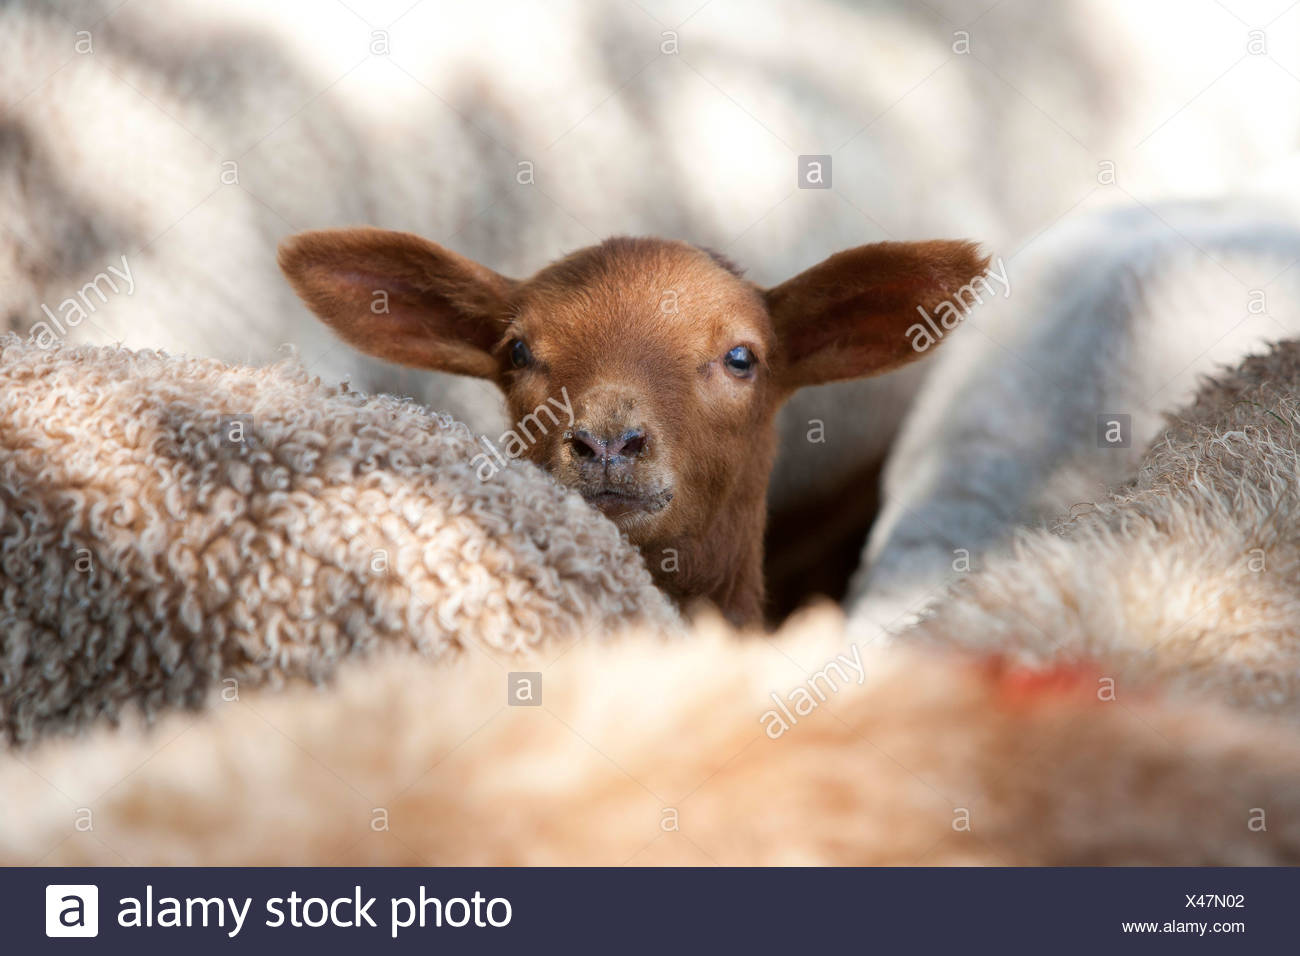 domestic sheep (Ovis ammon f. aries), brown lamp looking out between sheep, Germany Stock Photo